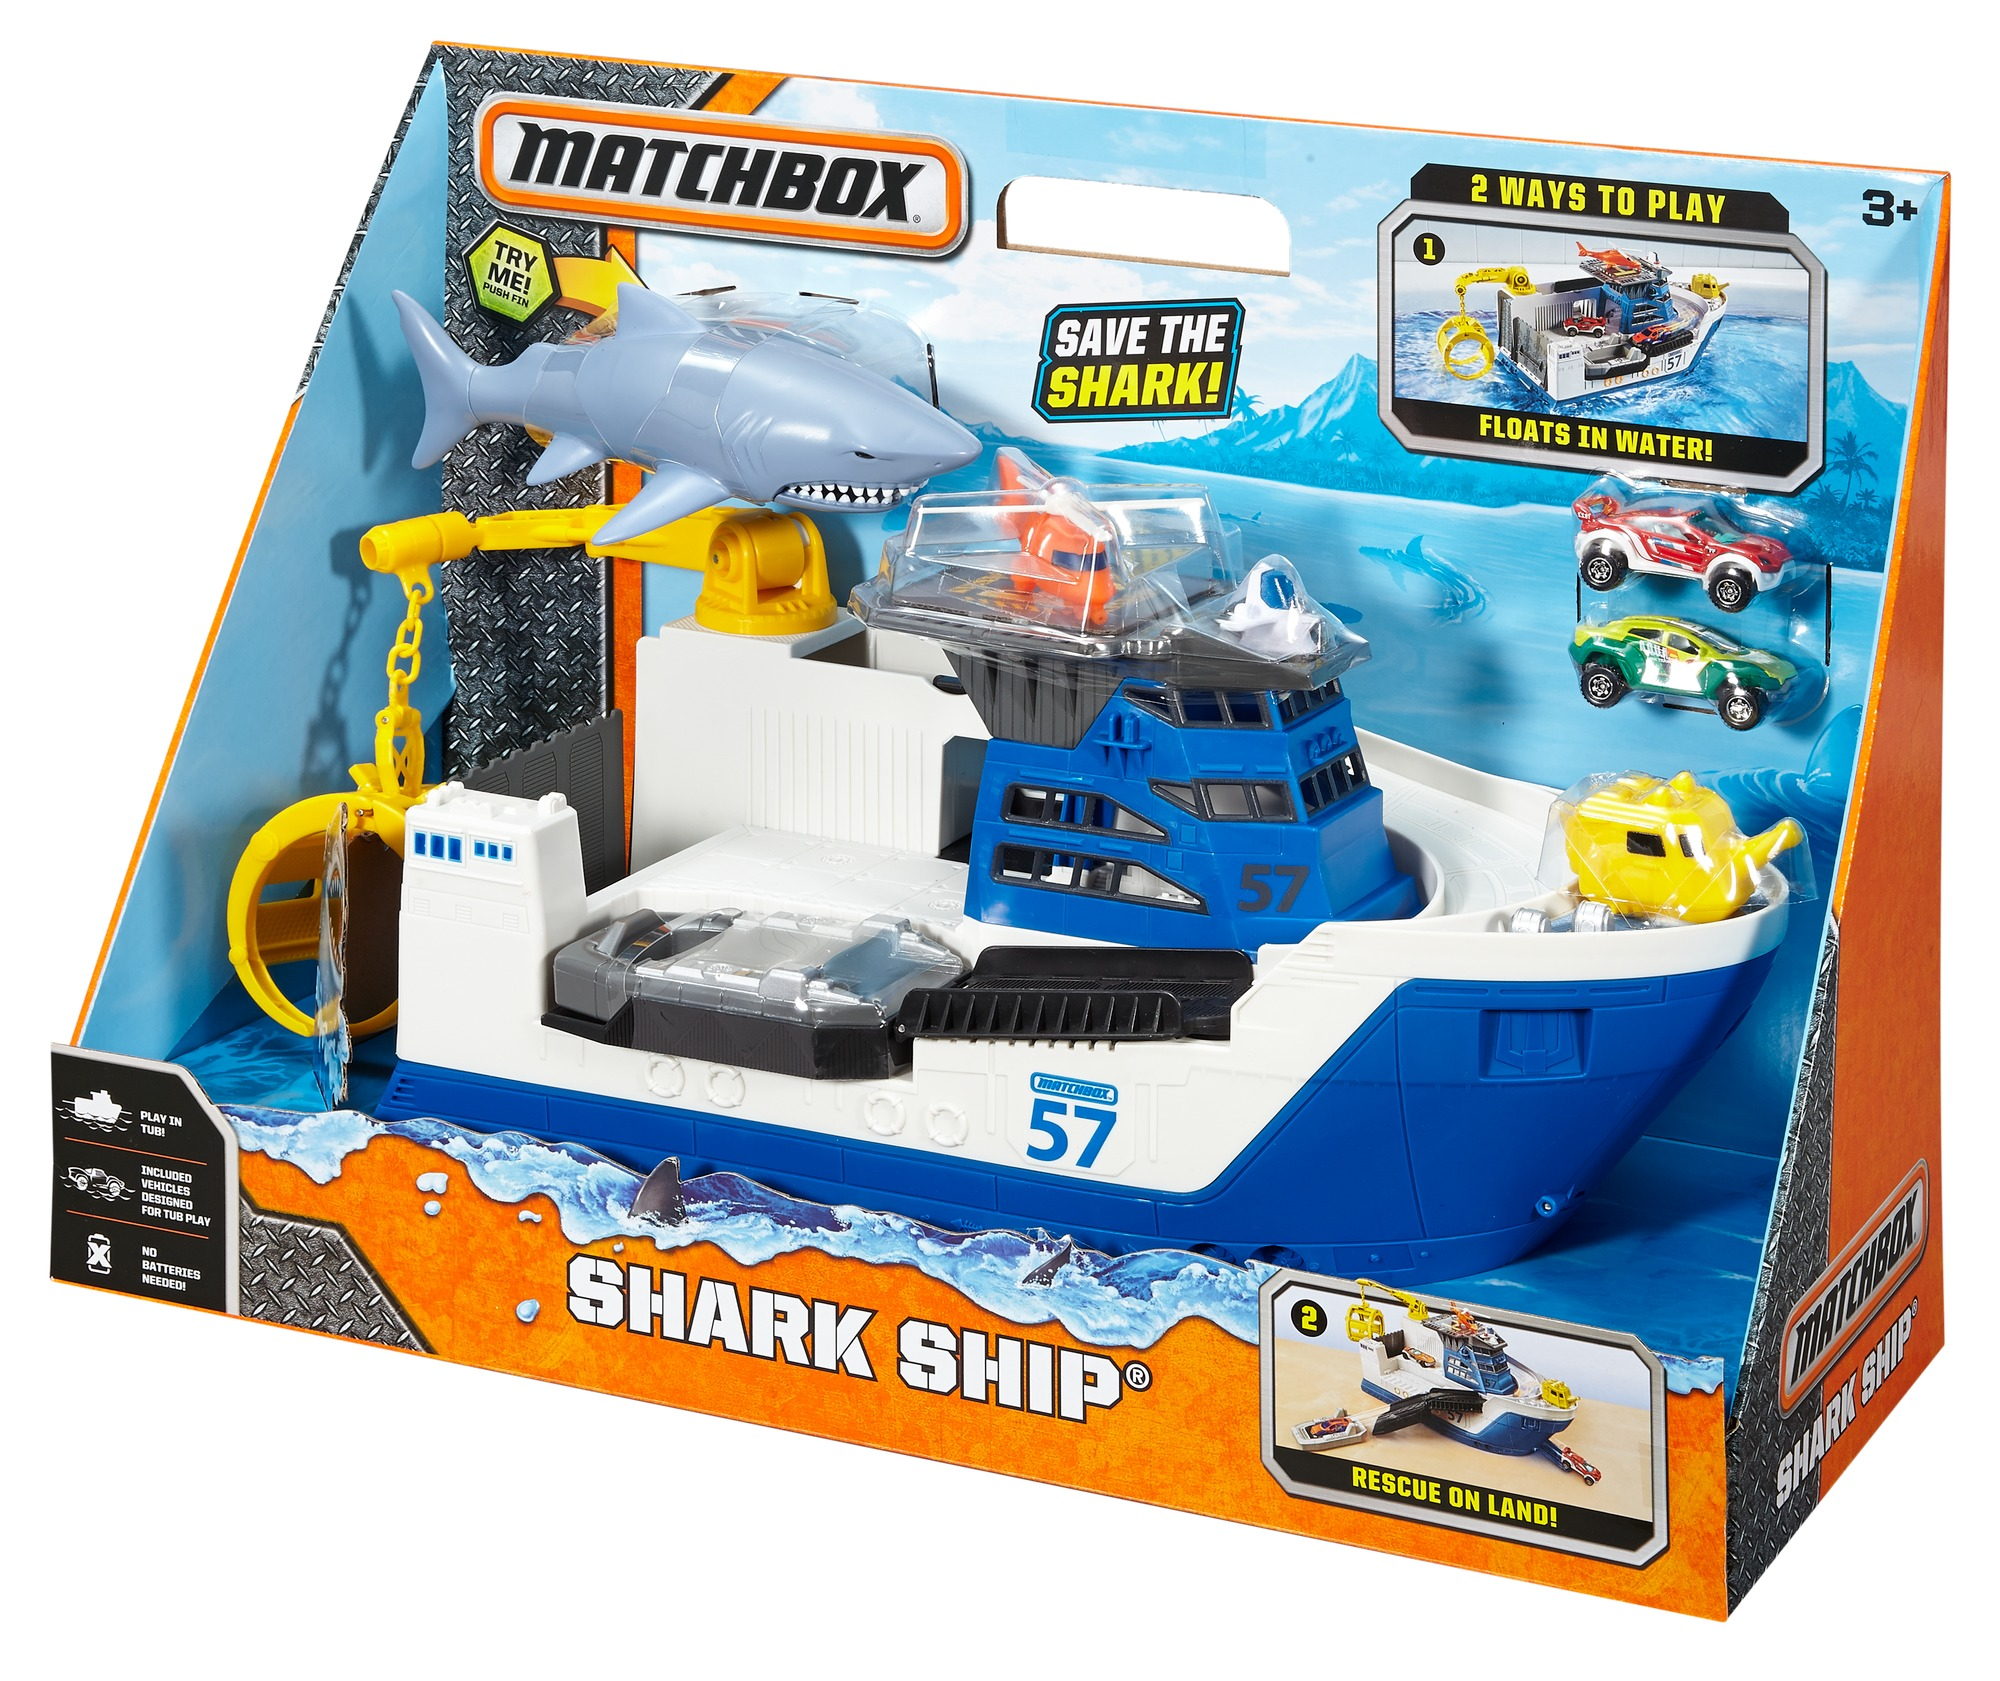 Shark Ship Toy : Matchbox shark ship mission marine rescue mega rig floats